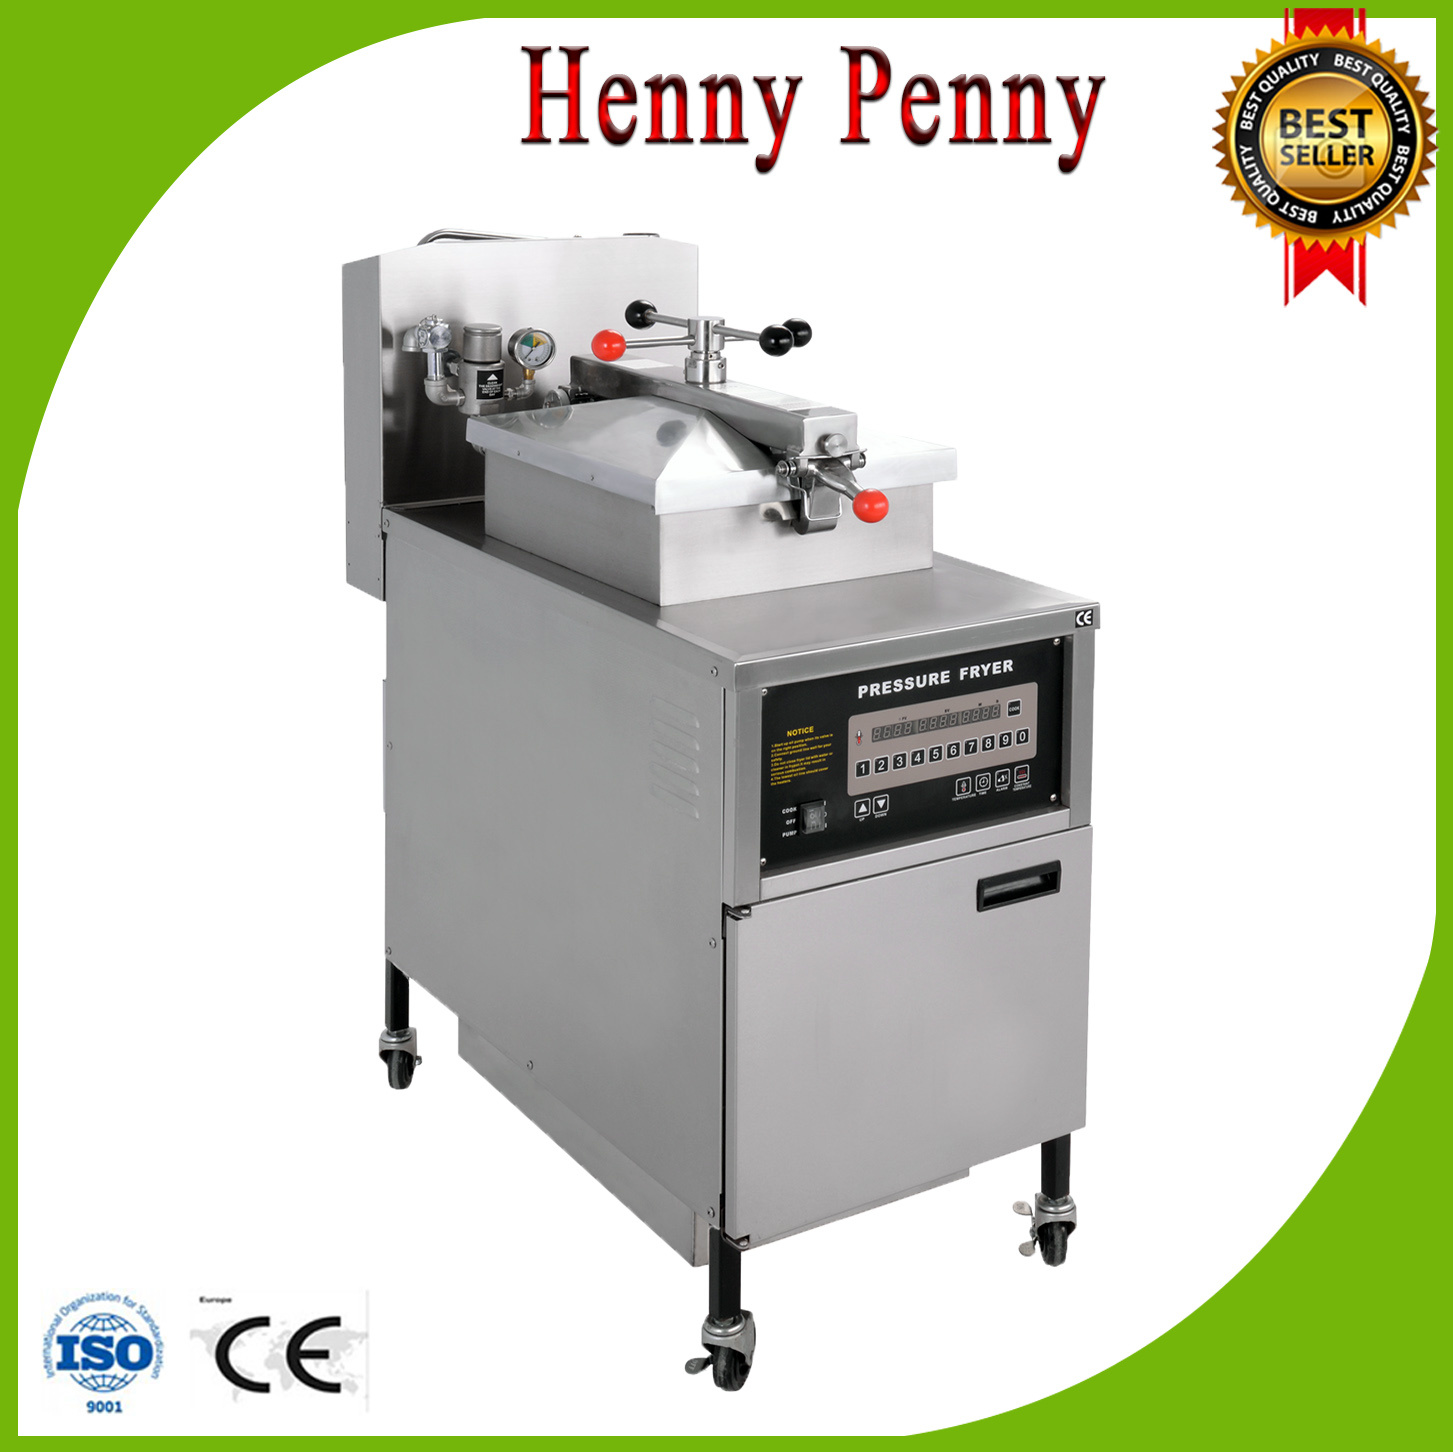 China Pfe 600 Ce Iso Automatic Henny Penny Pressure Fryer